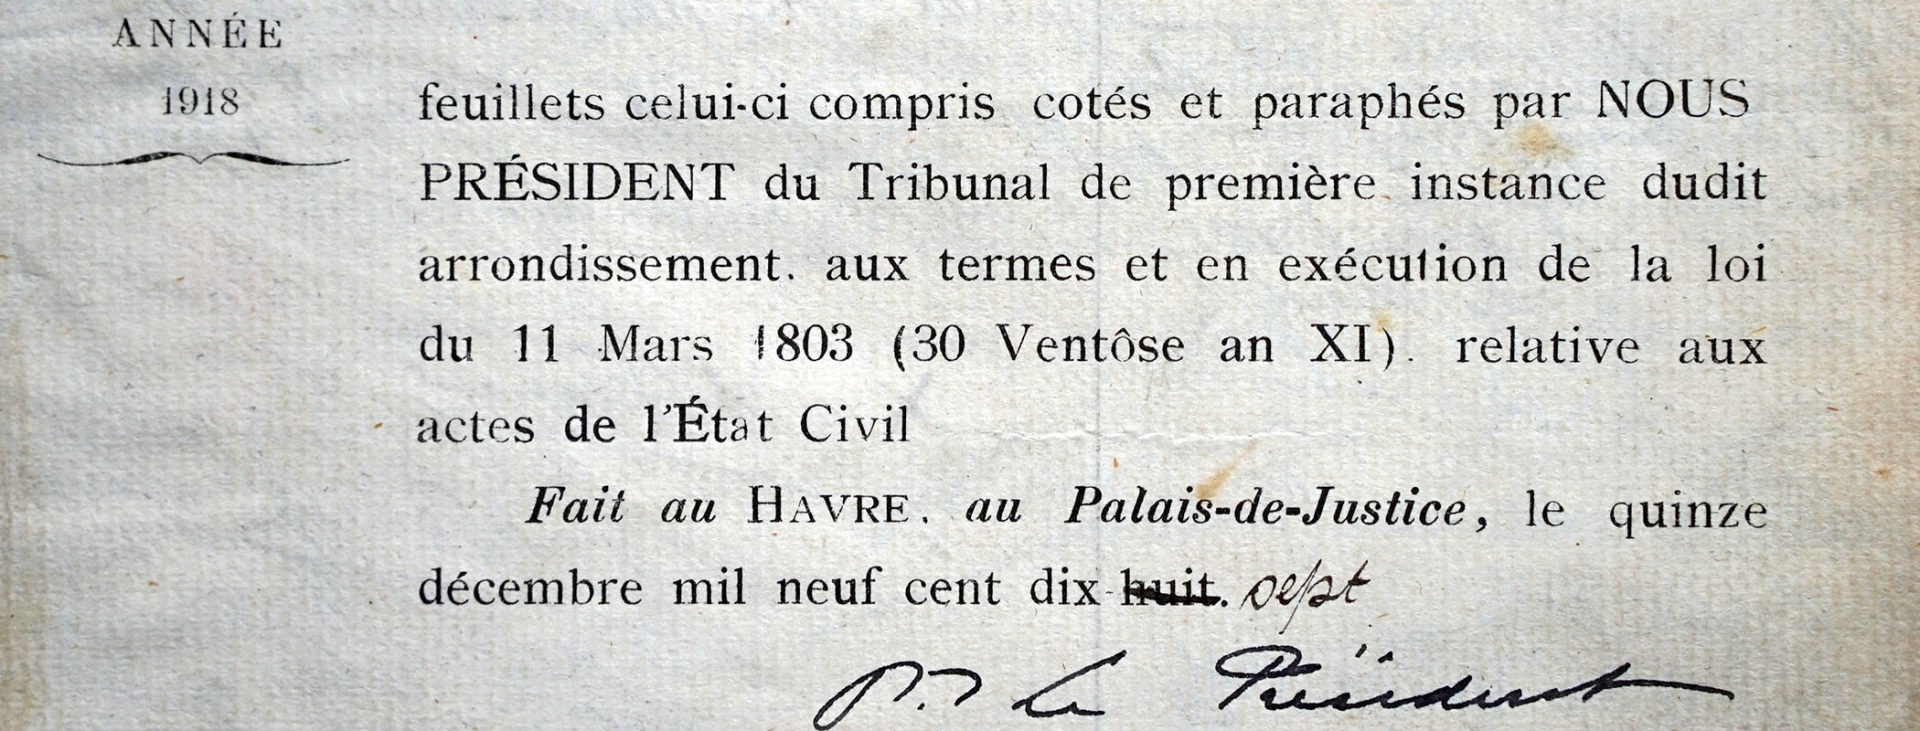 Etat civil de 1918